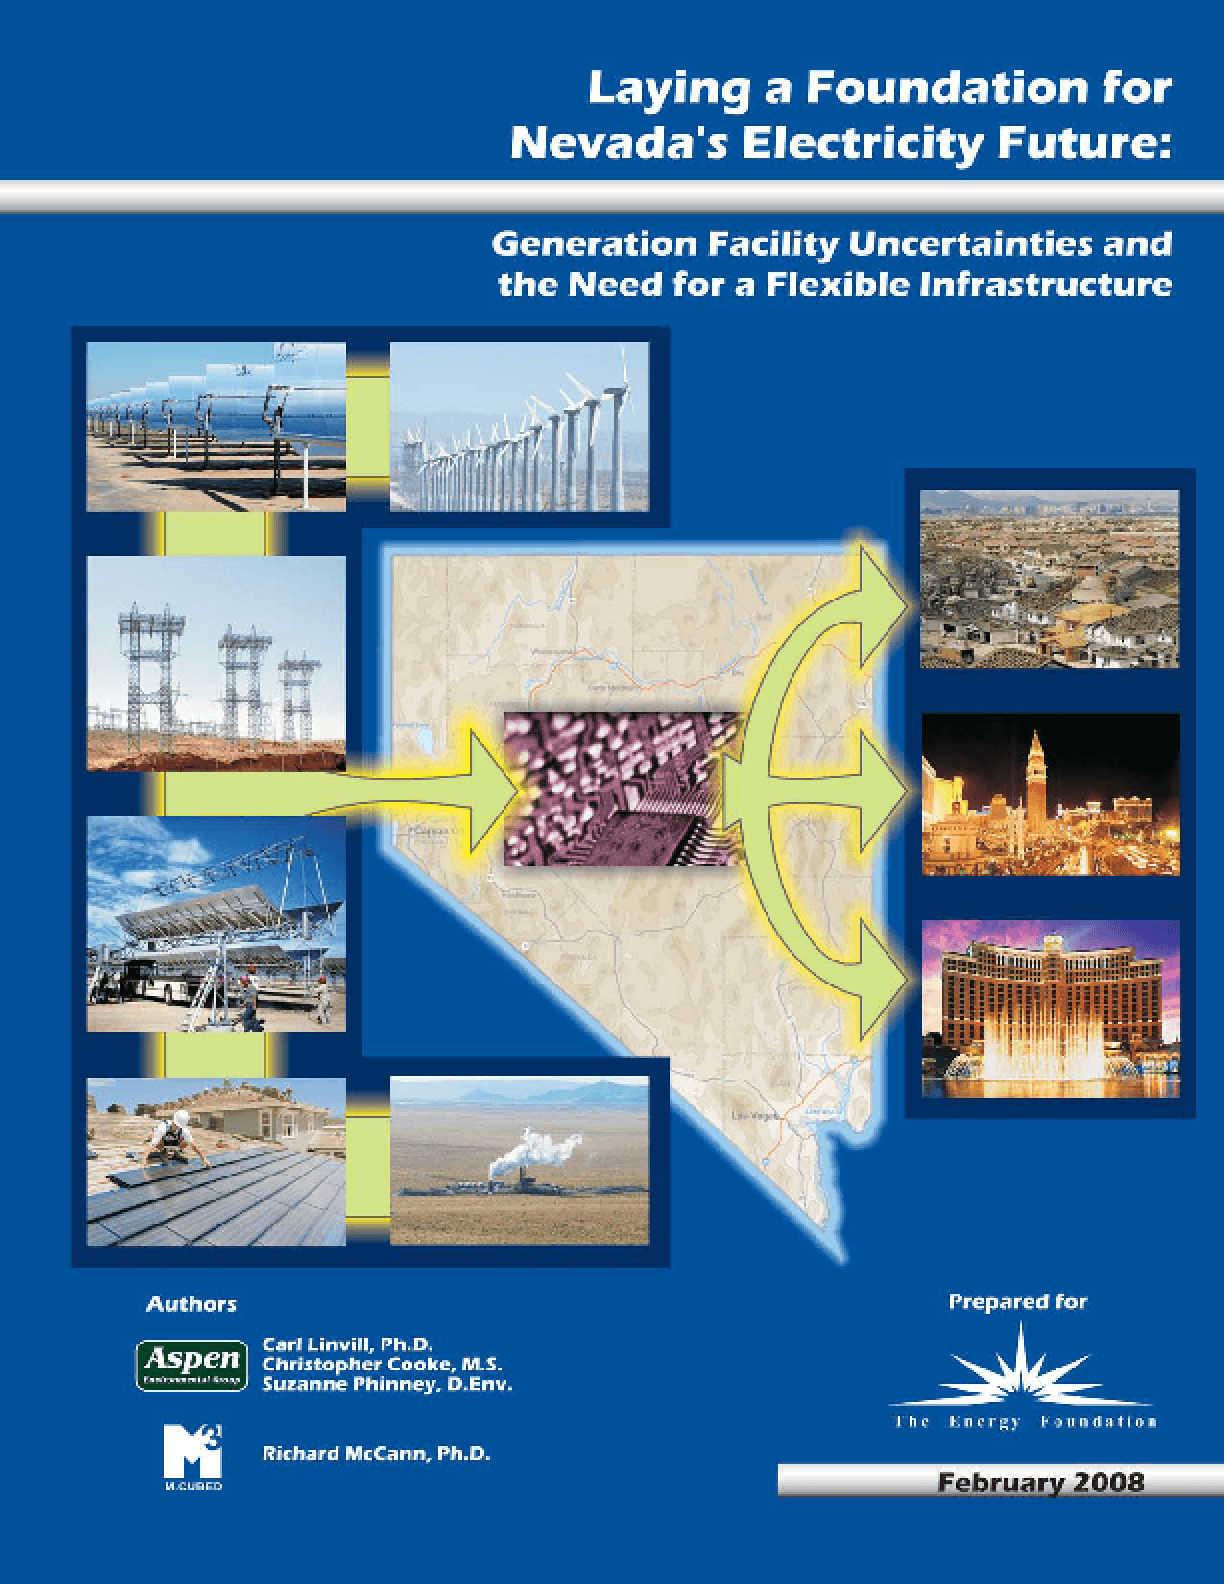 Laying a Foundation for Nevada's Electricity Future: Generation Facility Uncertainties and the Need for a Flexible Infrastructure